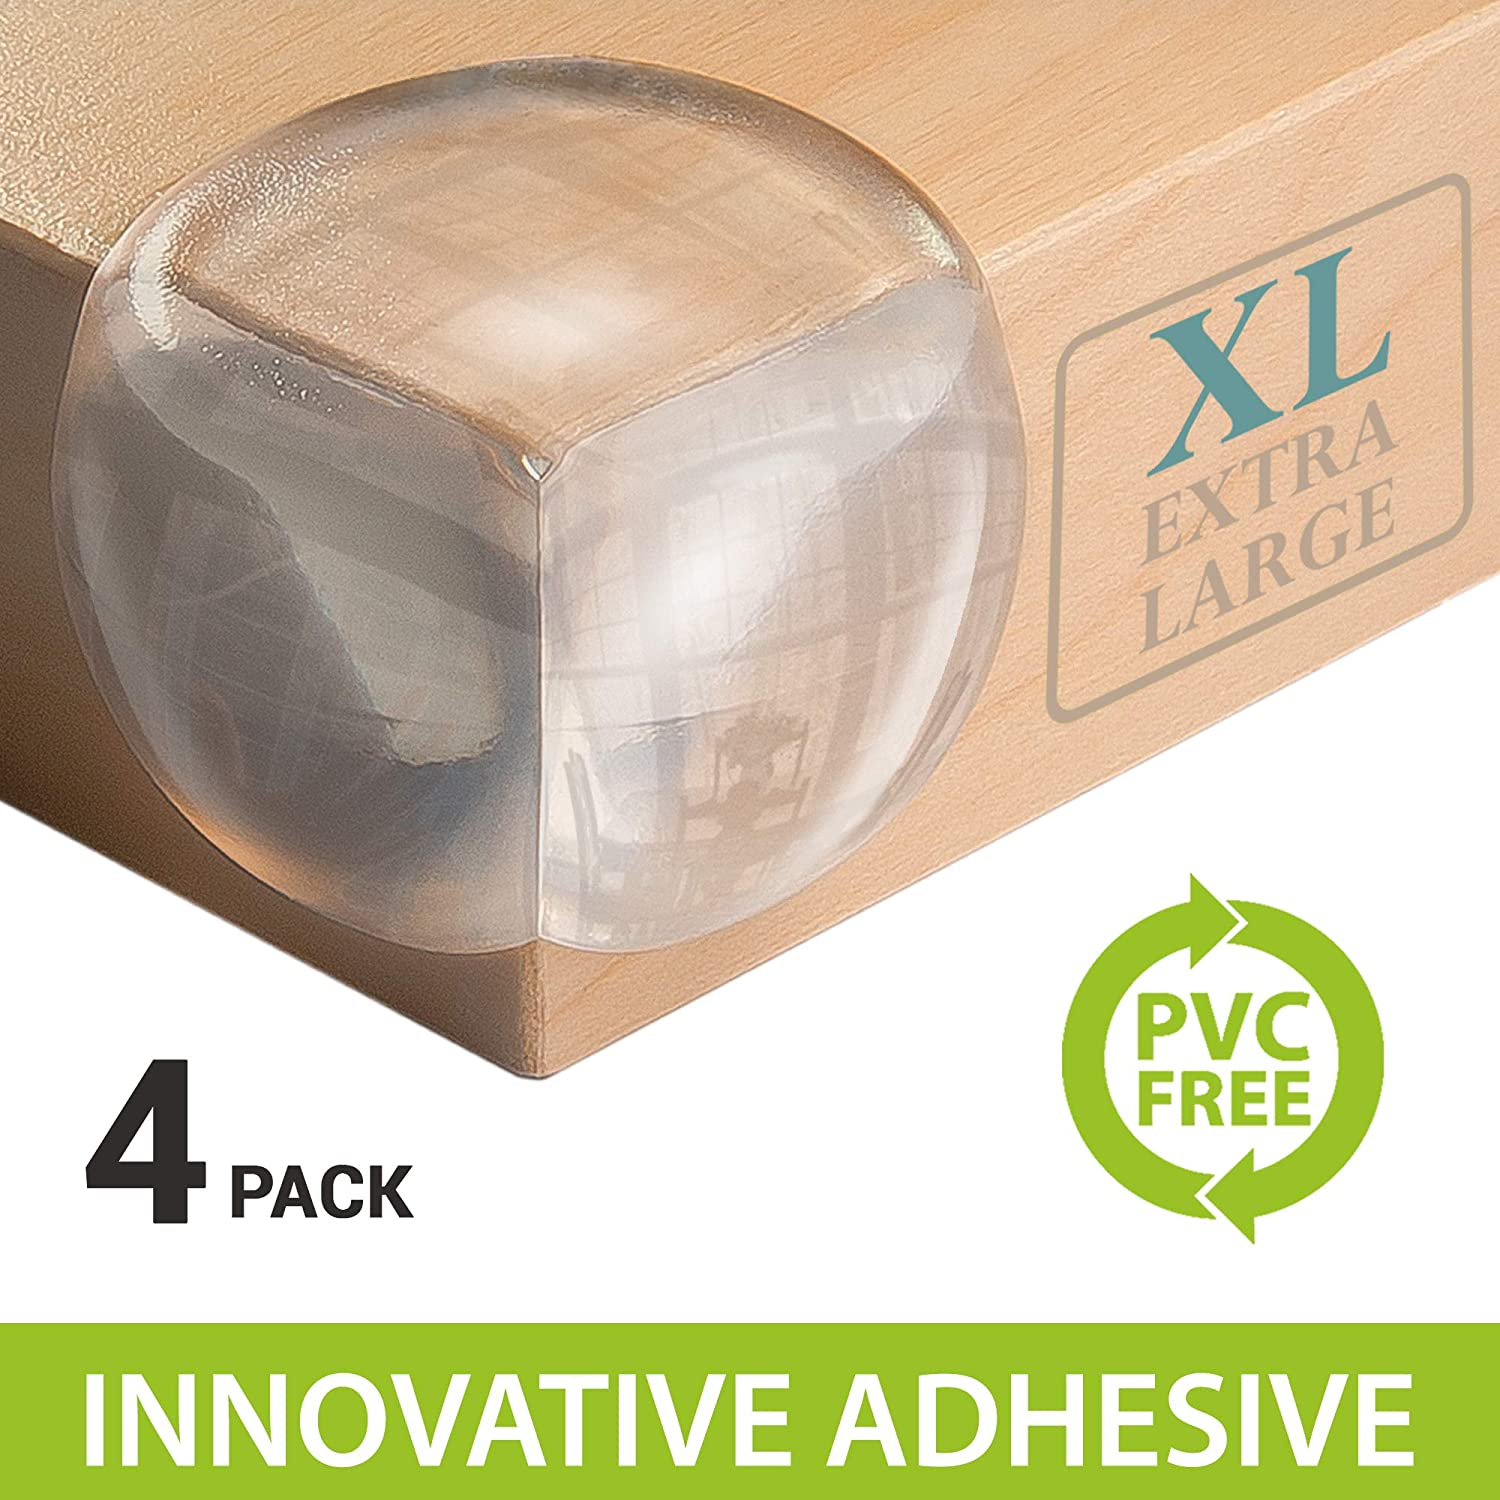 Extra Large for Safety Aesthetically Clear 4 Pack 200/% Softer Material Corner Guards Innovative PVC Free- Baby Proofing Toddler Friendly X5 More Adhesive Power Pre-Applied